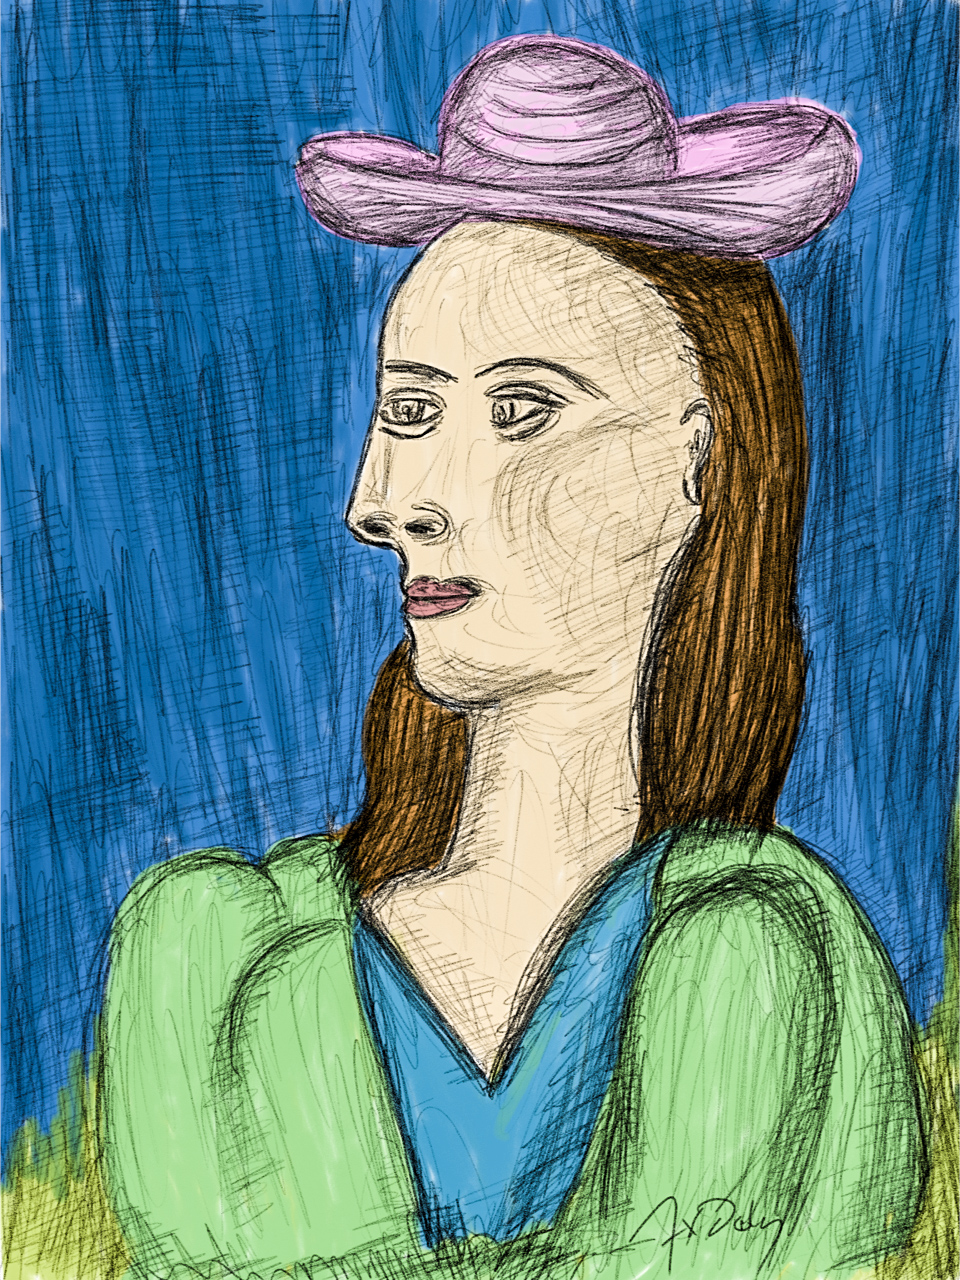 Drawing of Picasso's Woman with a hat